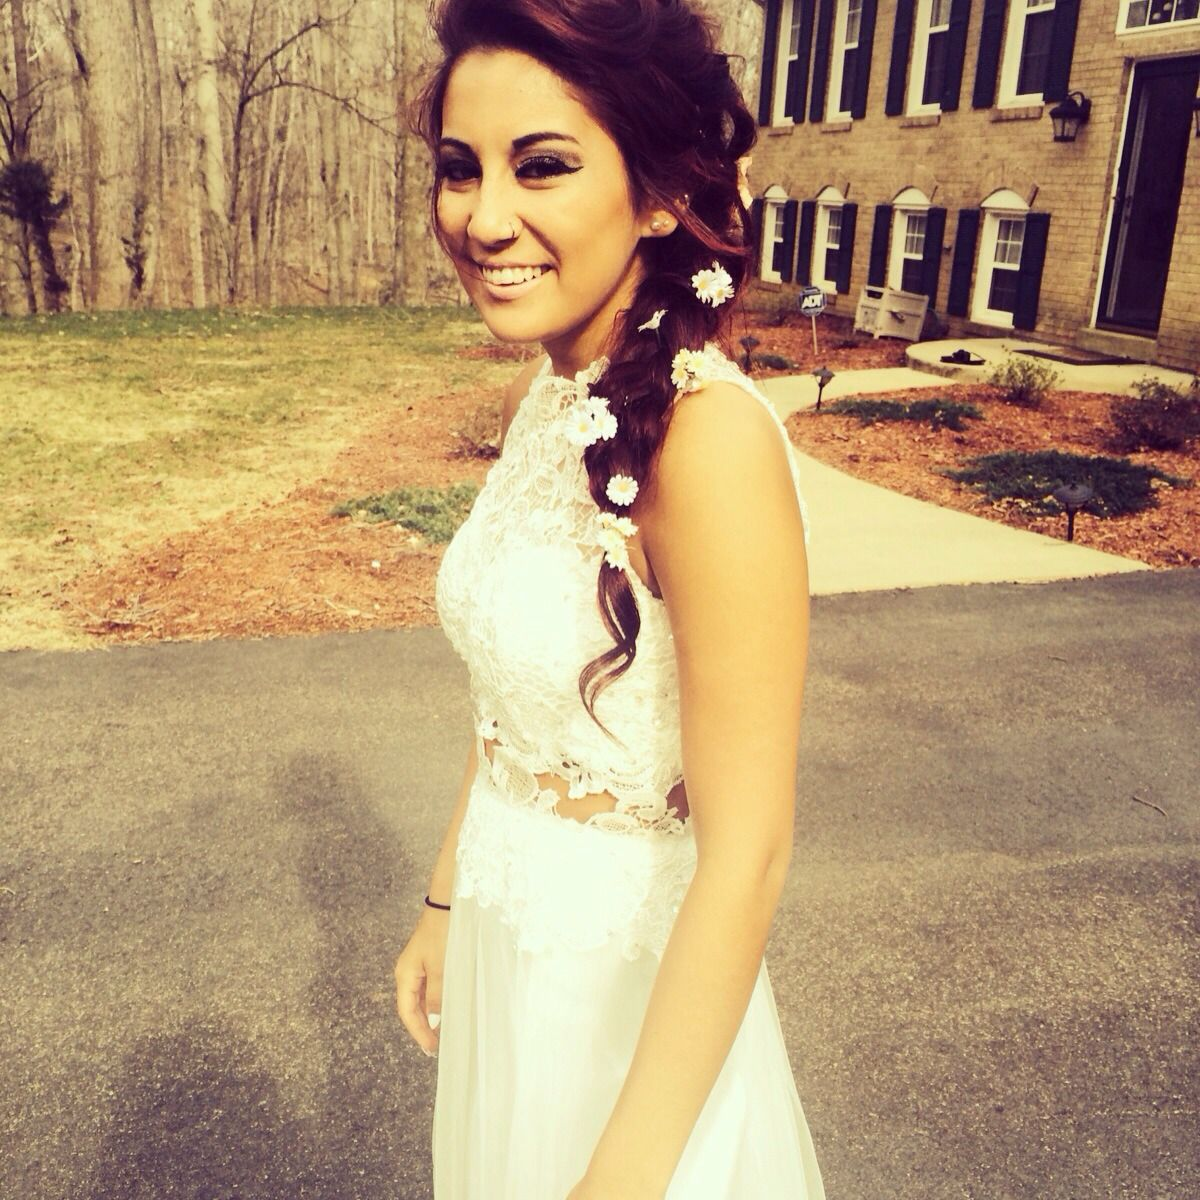 White Lace Prom Dress Pinterest 41